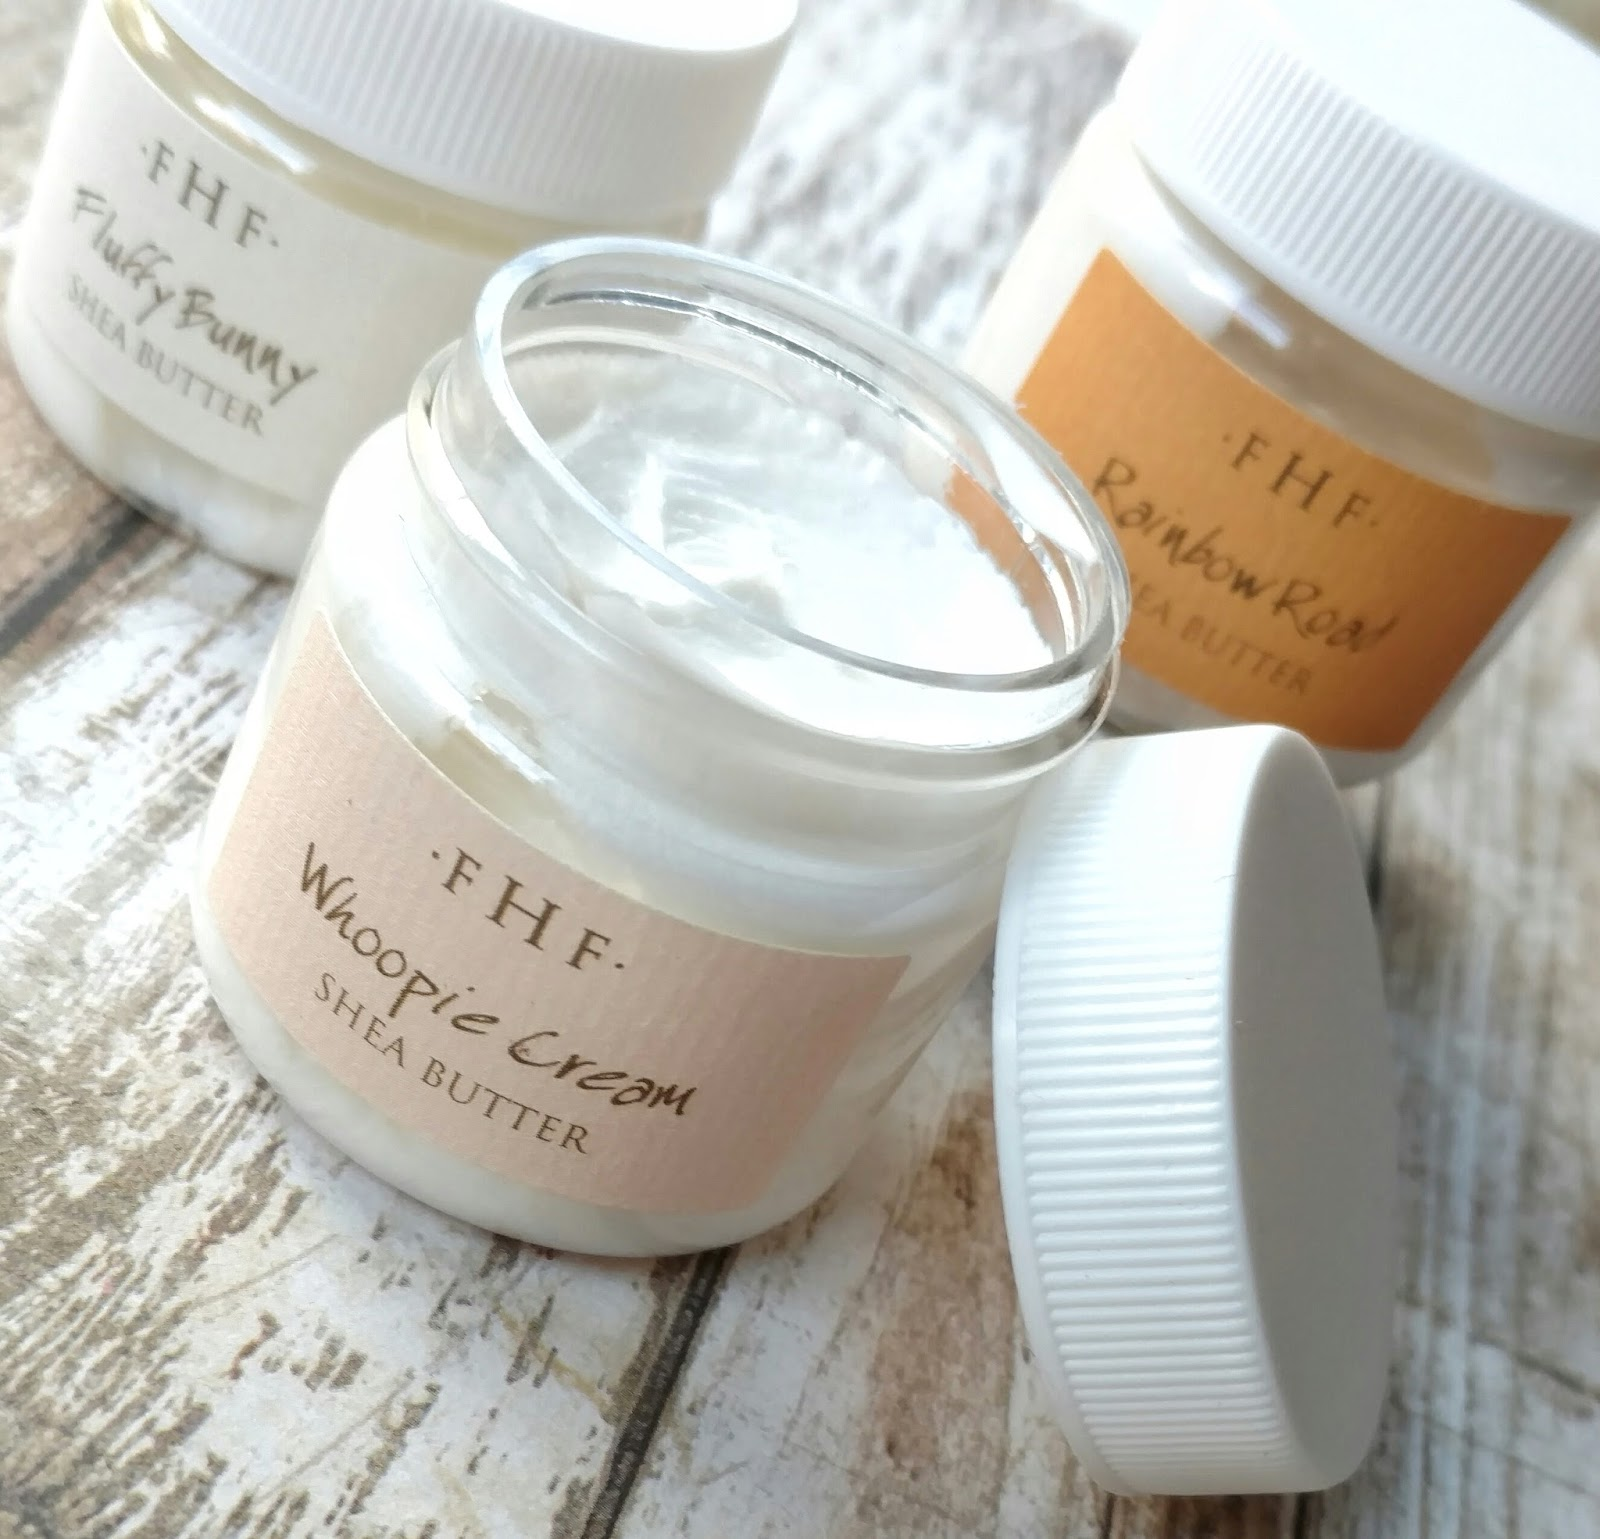 Farmhouse Fresh Body Products Farmhouse Fresh Travel Sets For The Holidays The Budget Beauty Blog